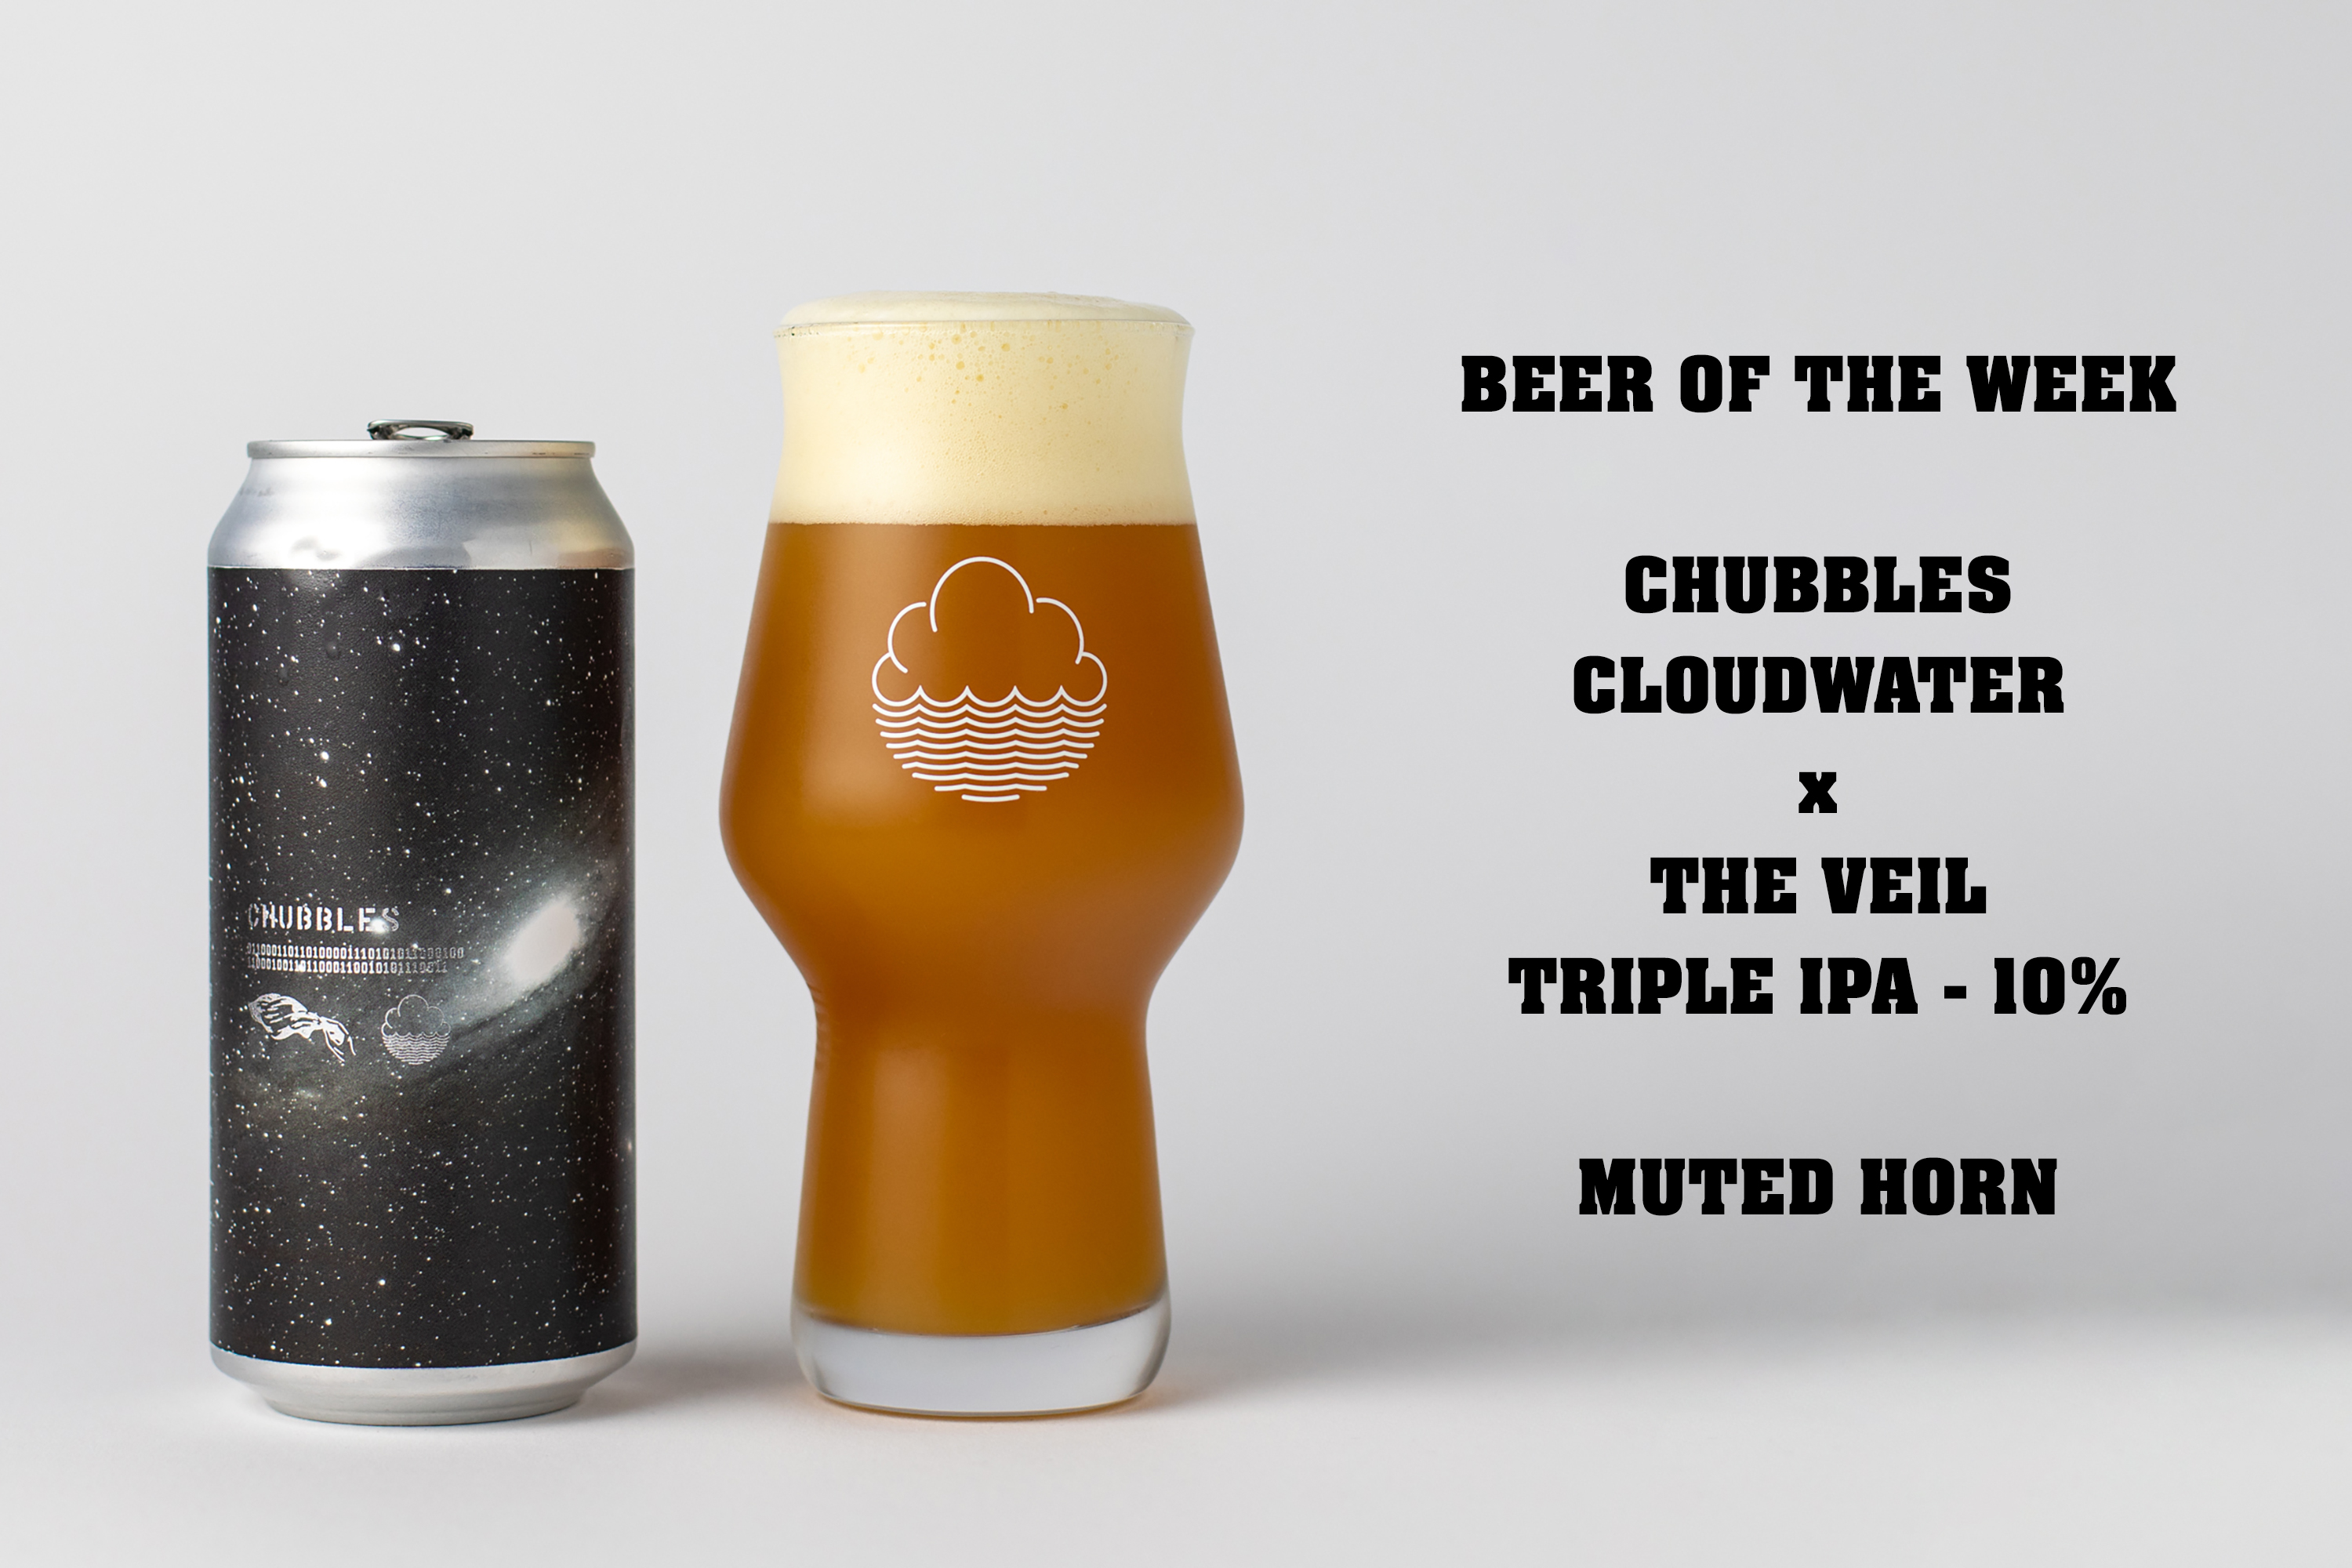 Chubbles is a 10% Triple IPA collaboration between Cloudwater Brew Co and The Veil Brewing Co.